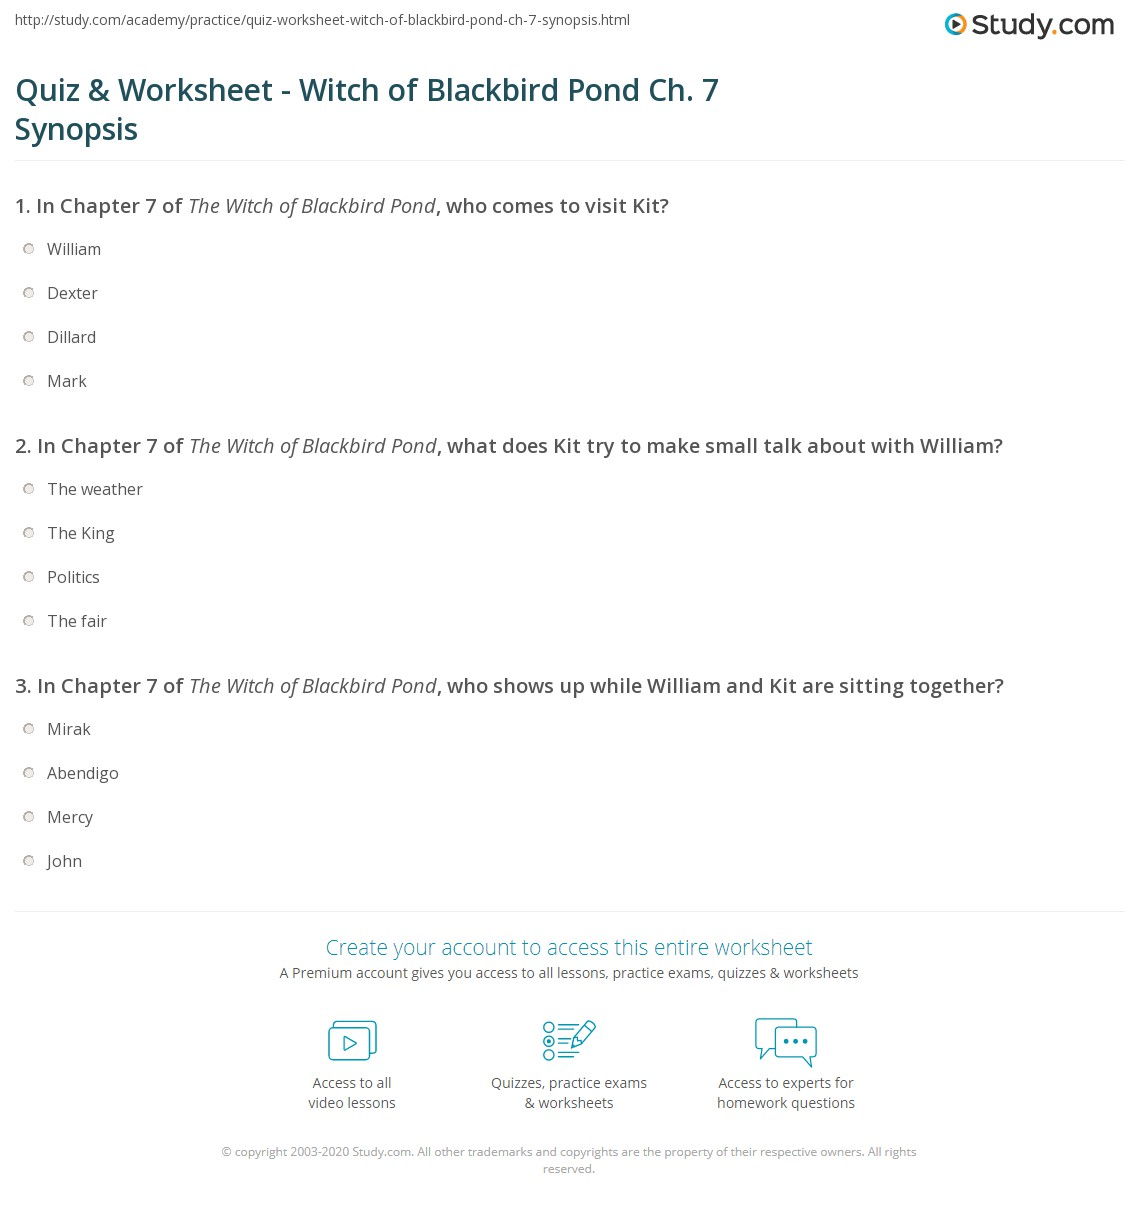 Quiz & worksheet witch of blackbird pond ch. 7 synopsis | study. Com.